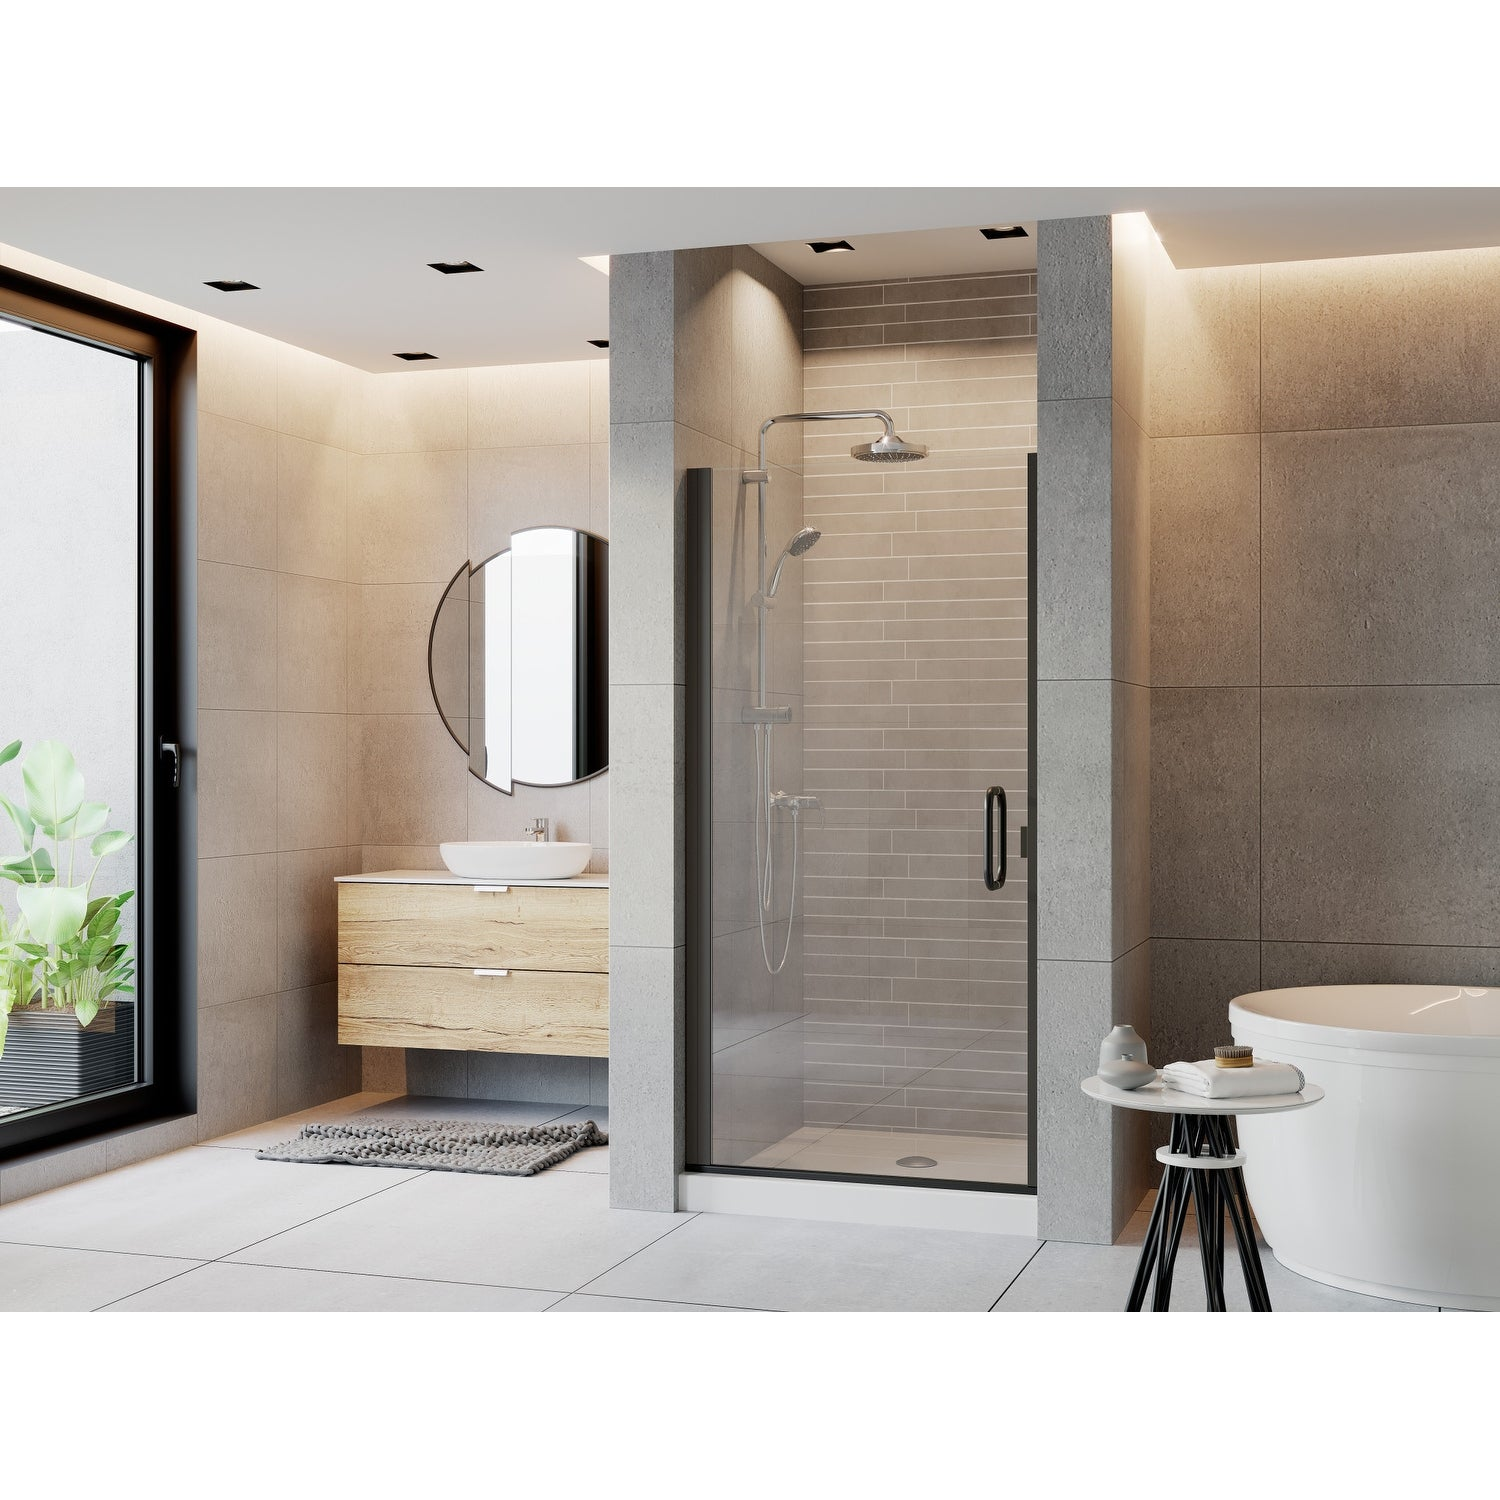 Coastal Shower Doors Pcqfr28 75 C Paragon Series 28 X 74 Semi Frameless Continuous Hinge Shower Door And Clear Glass With